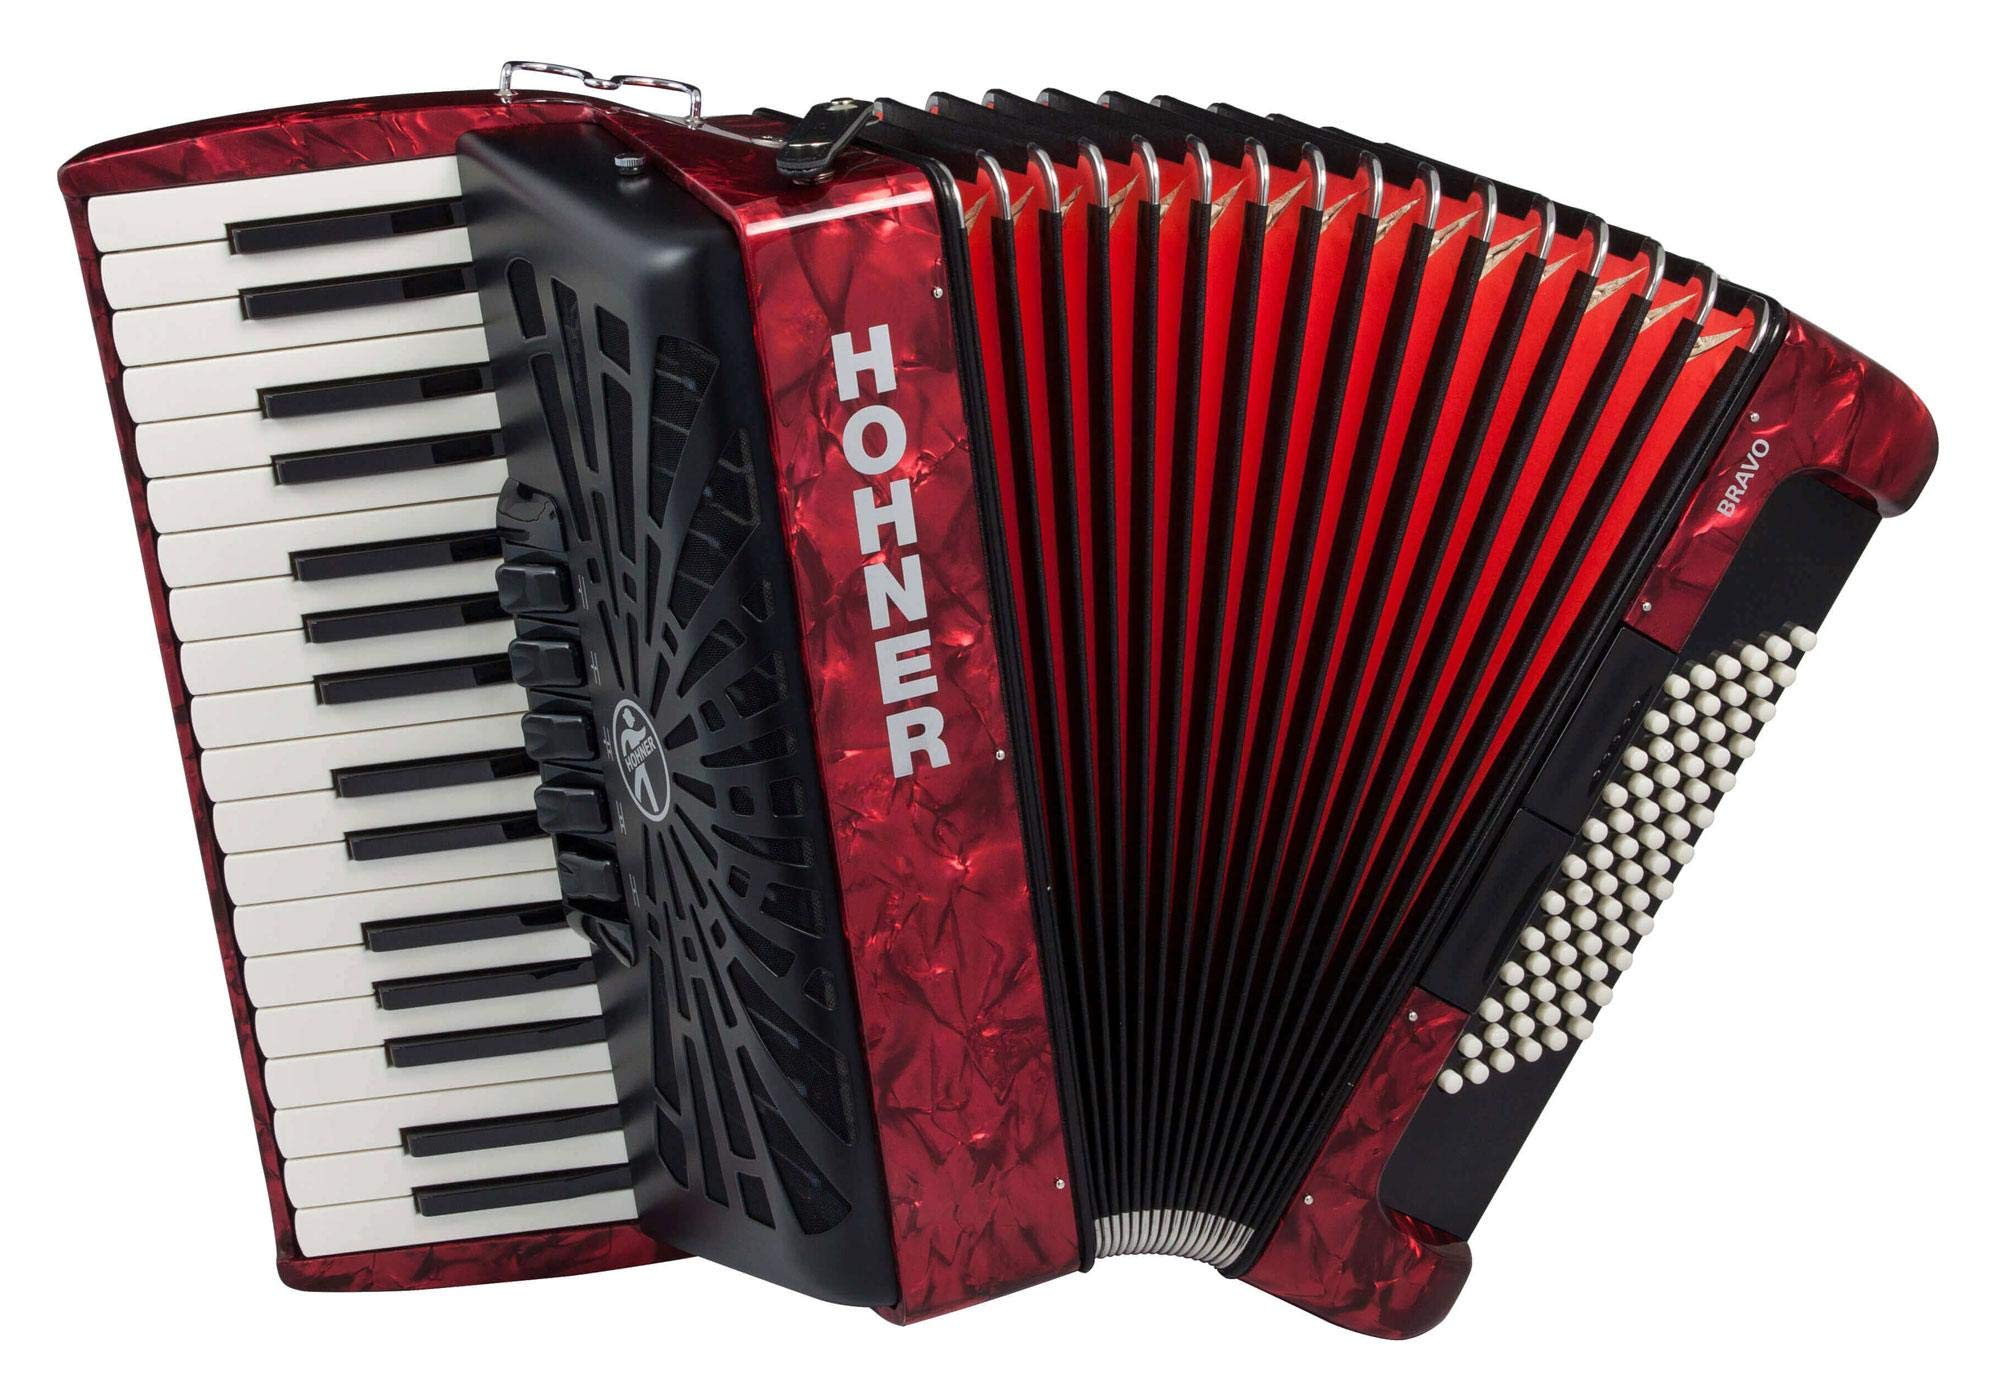 Hohner A16631S Bravo Line Facelift III -72 Bass Chromatic Piano Accordion with Gig Bag, Red by Hohner Accordions